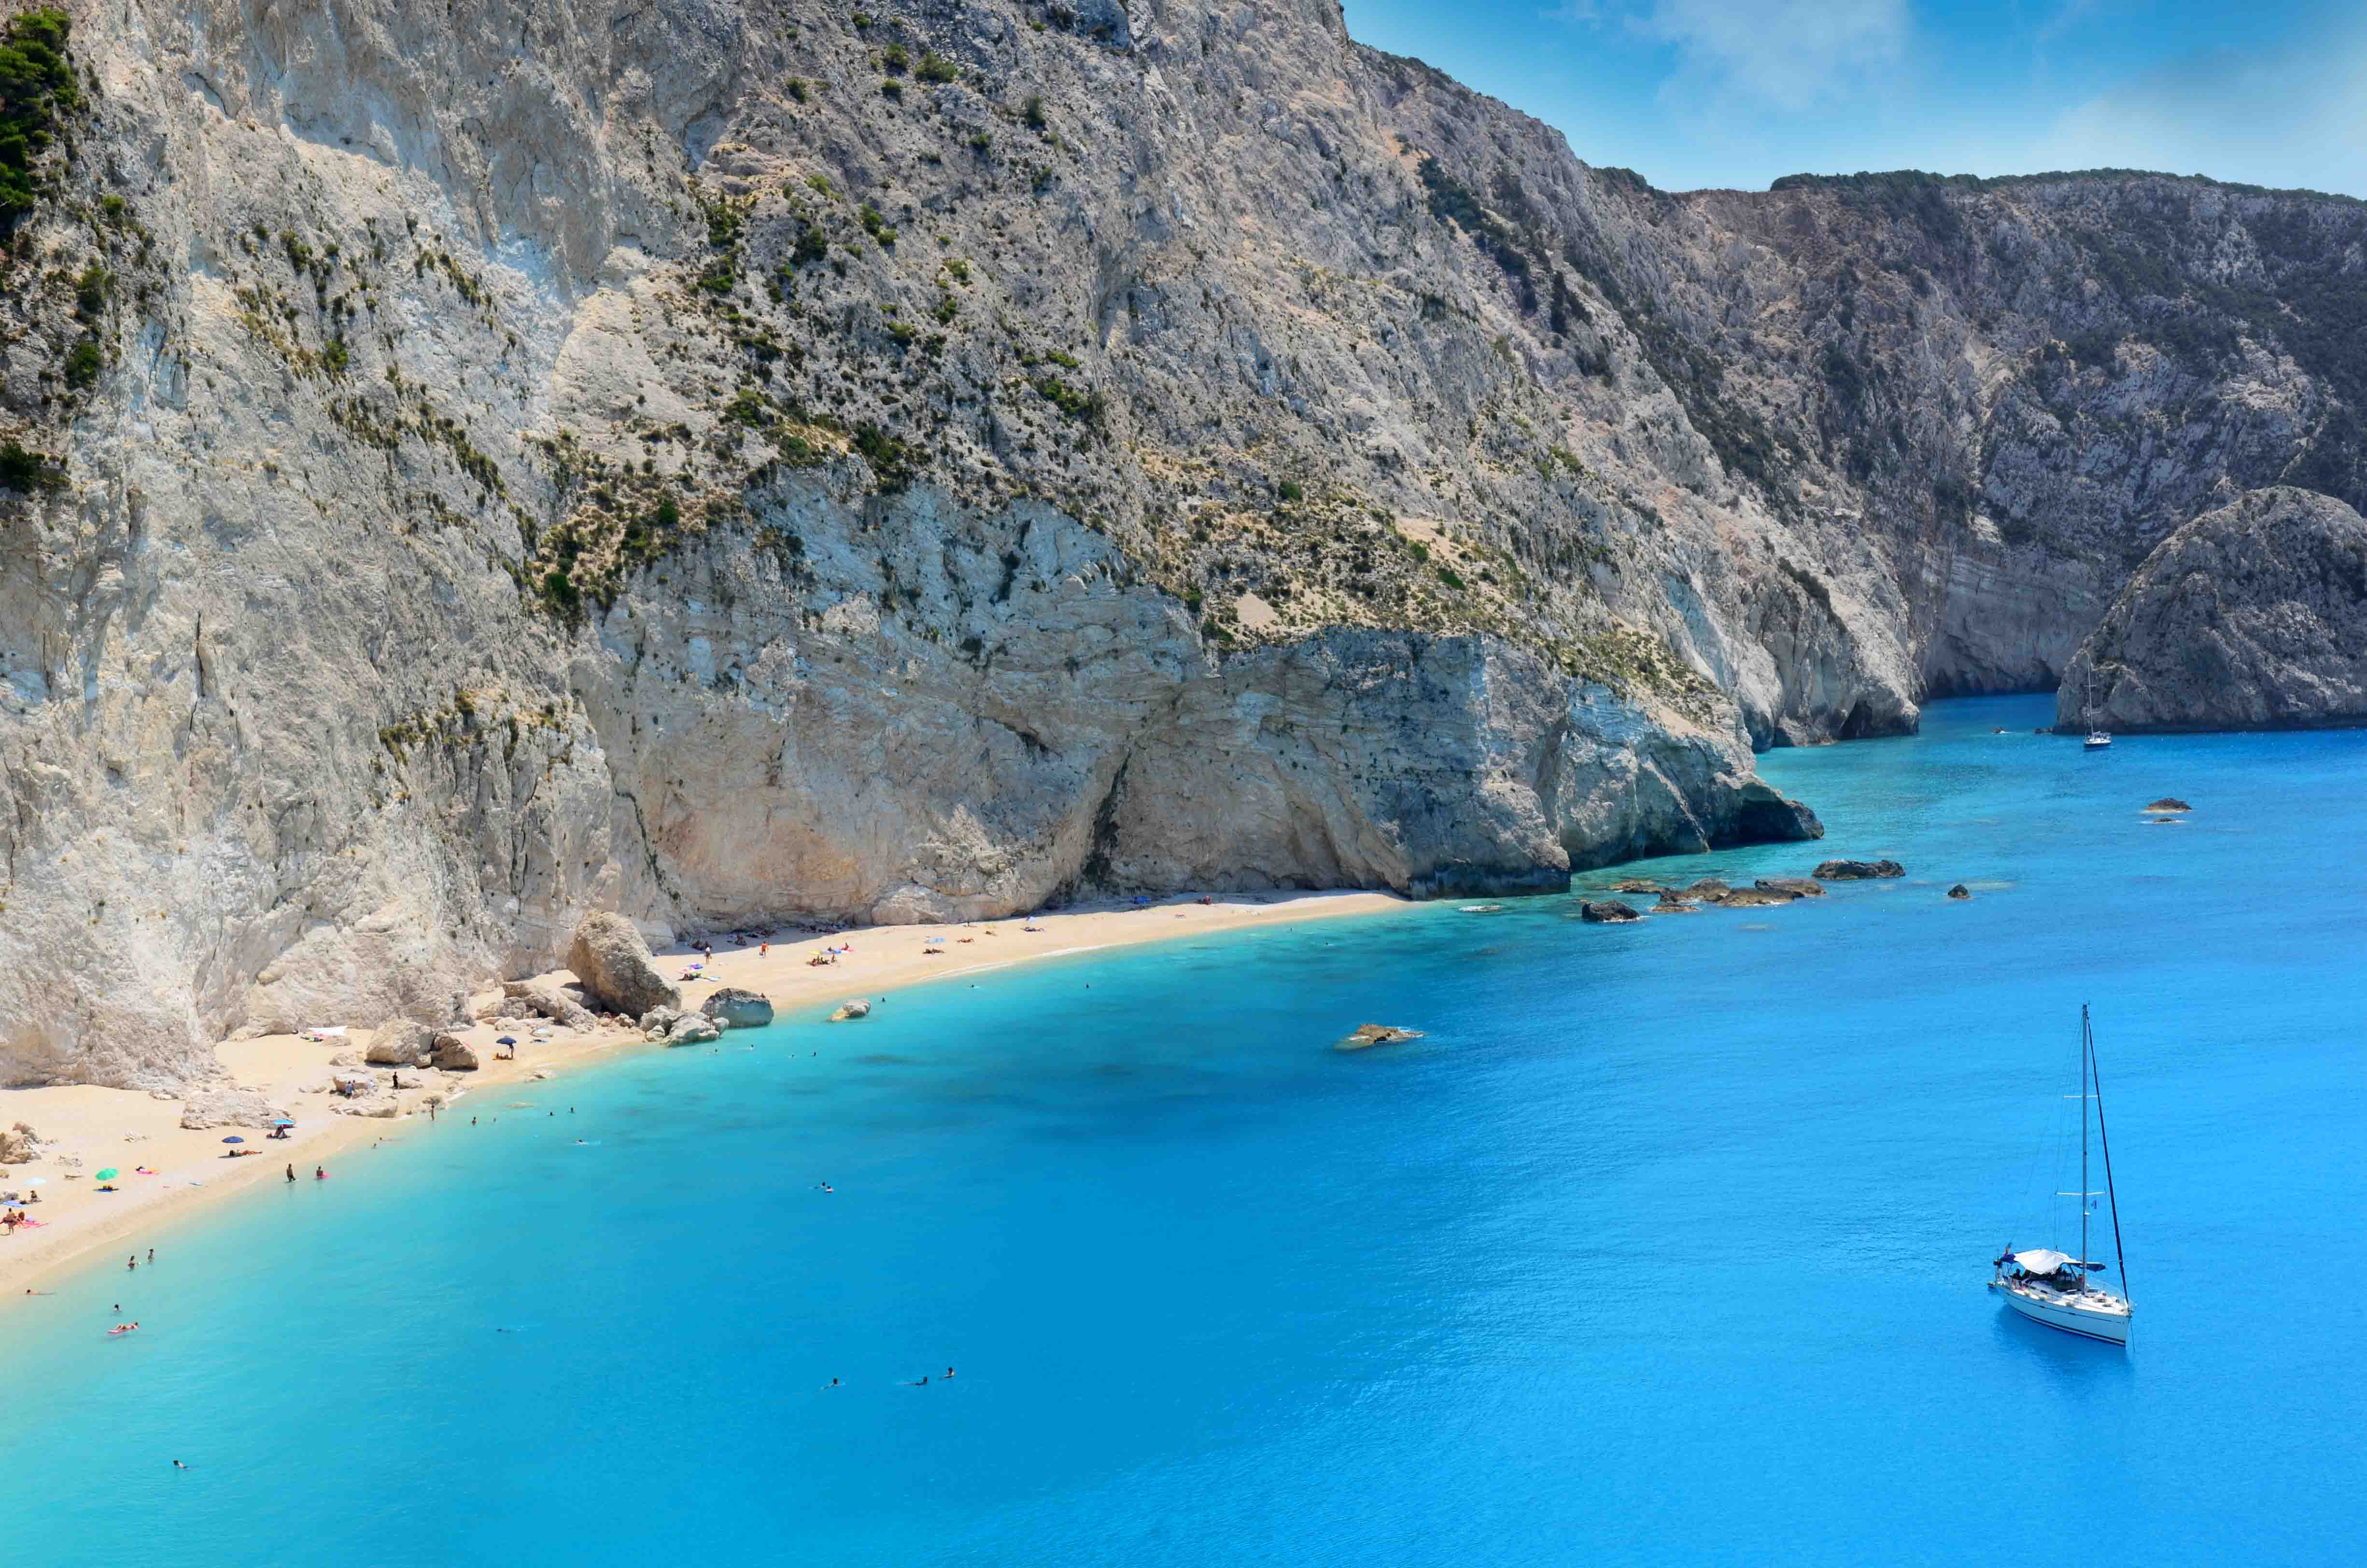 sailing in the Greek Islands with Zizoo boats